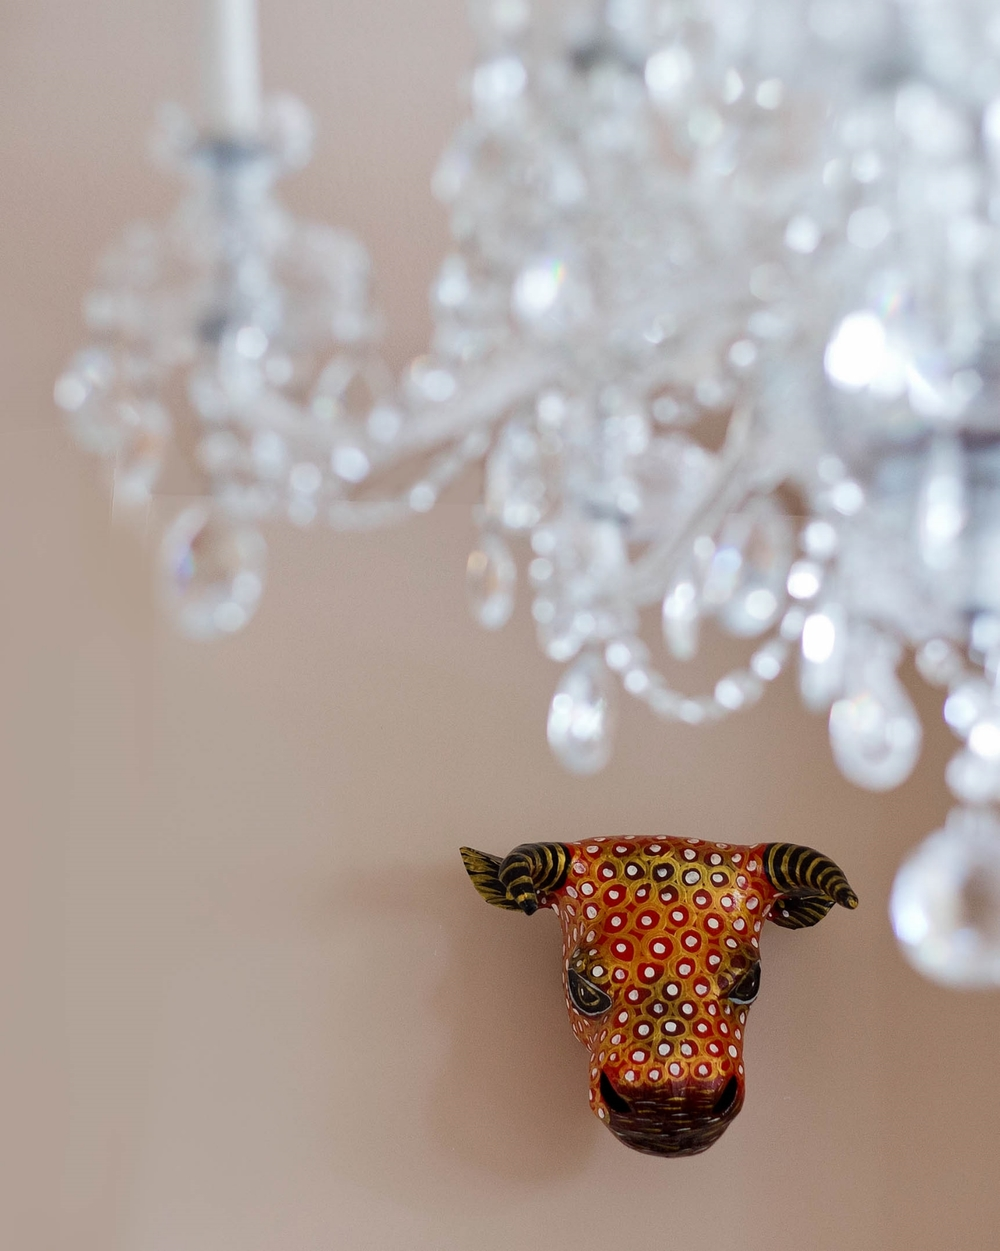 Primitive mask collection and crystal chandelier. Eclectic Northern Virginia, Shenandoah Valley  home. Photo: Matthew Lofton